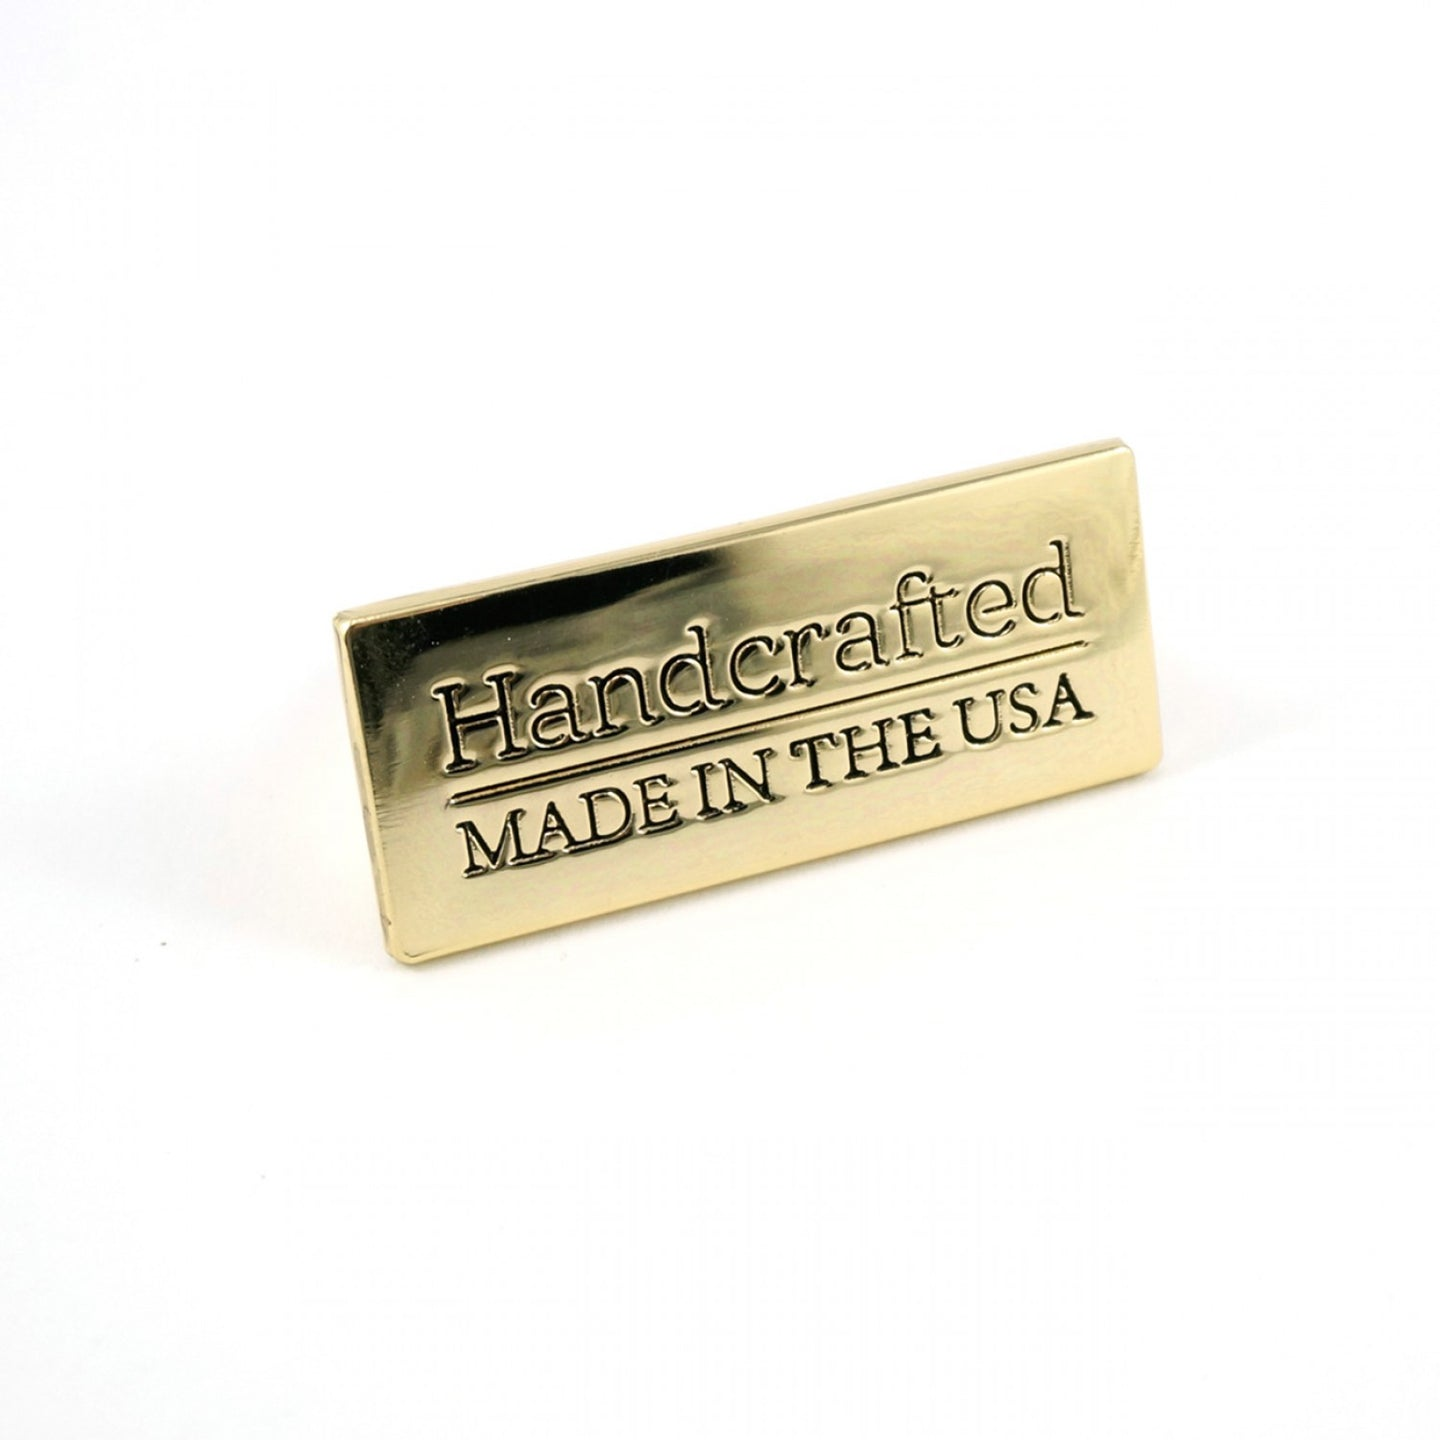 Metal Bag Label - Handcrafted | Made in the USA - Gold